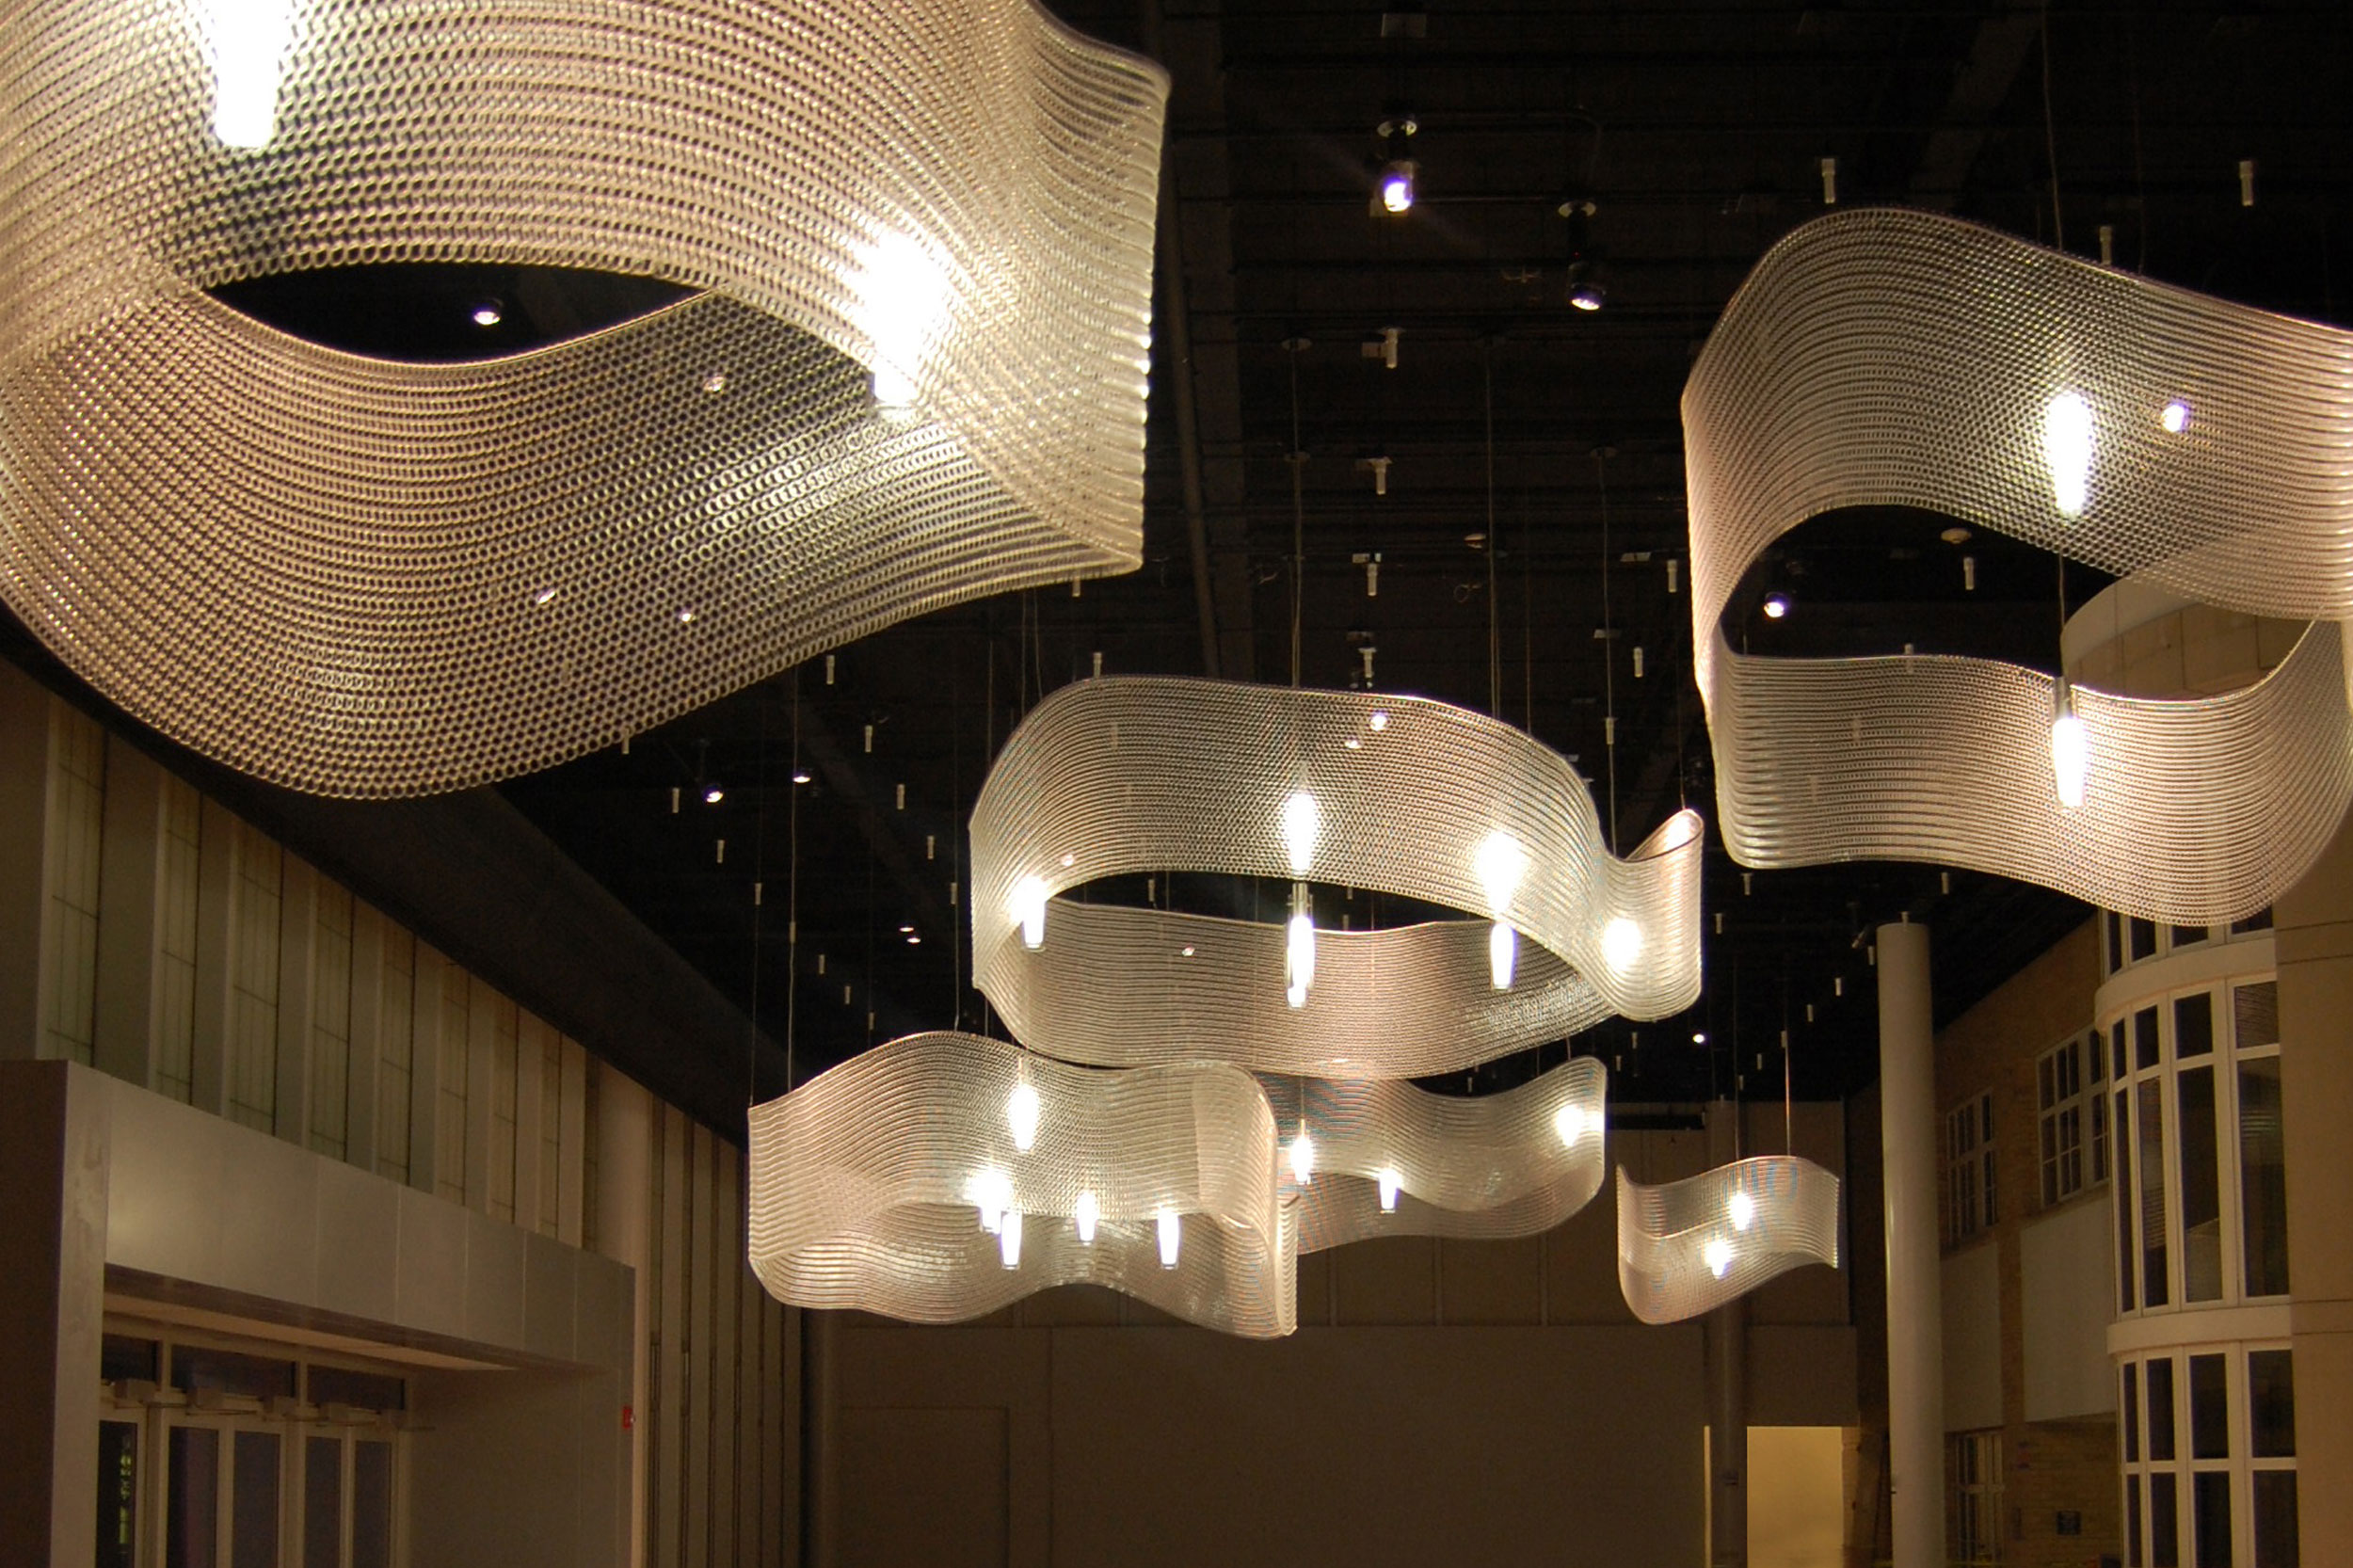 Sculptural Lighting Feature for Cornell University